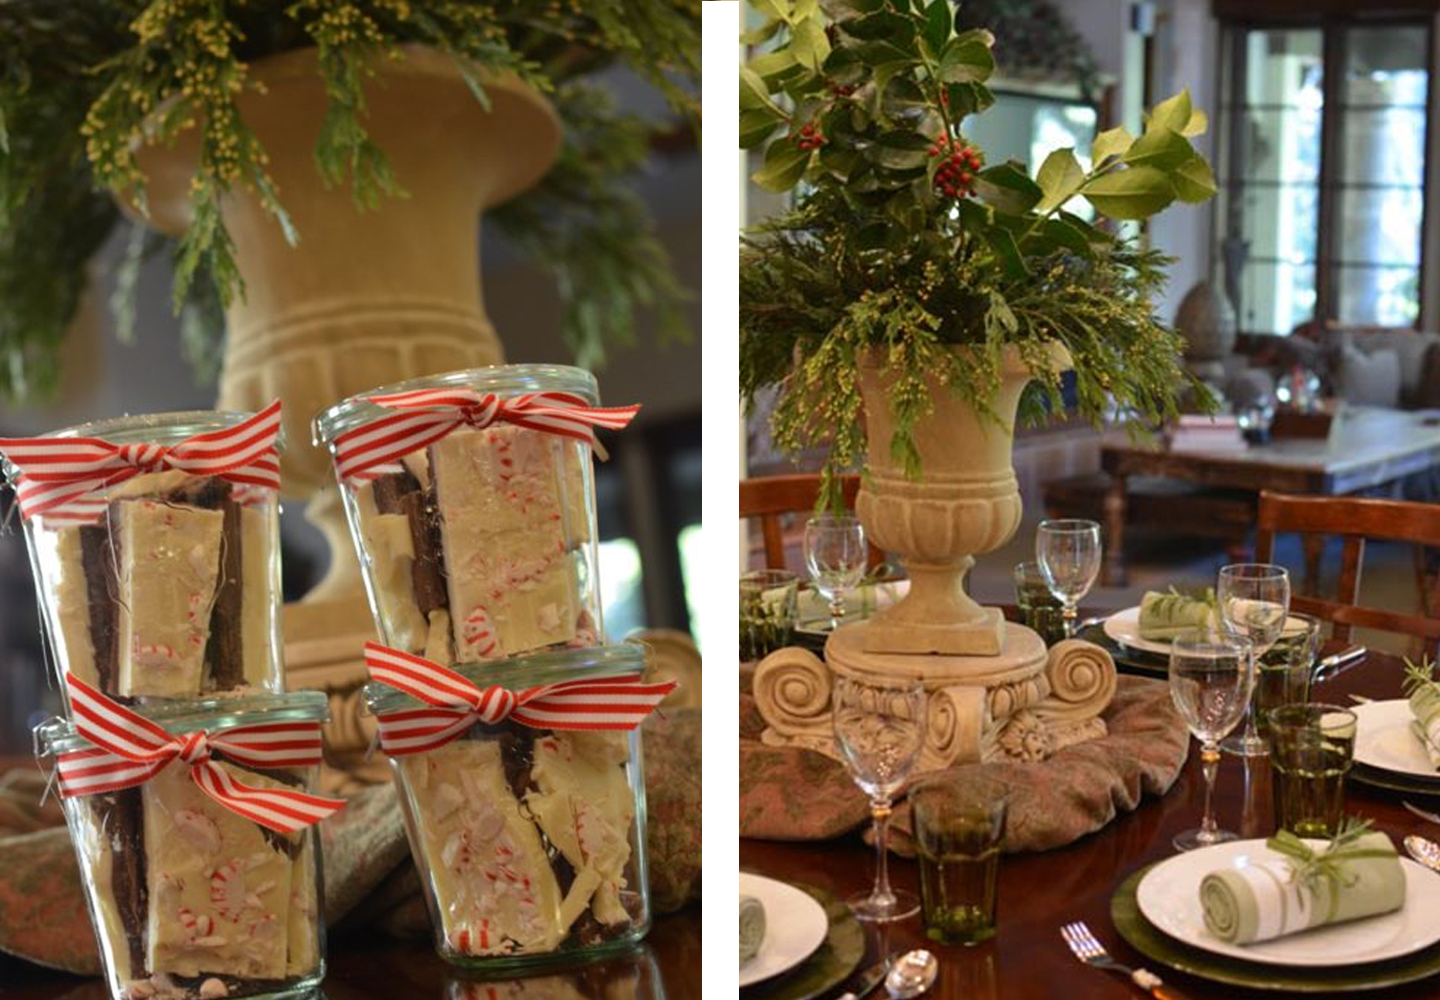 Simple table decor with a few holiday accents.